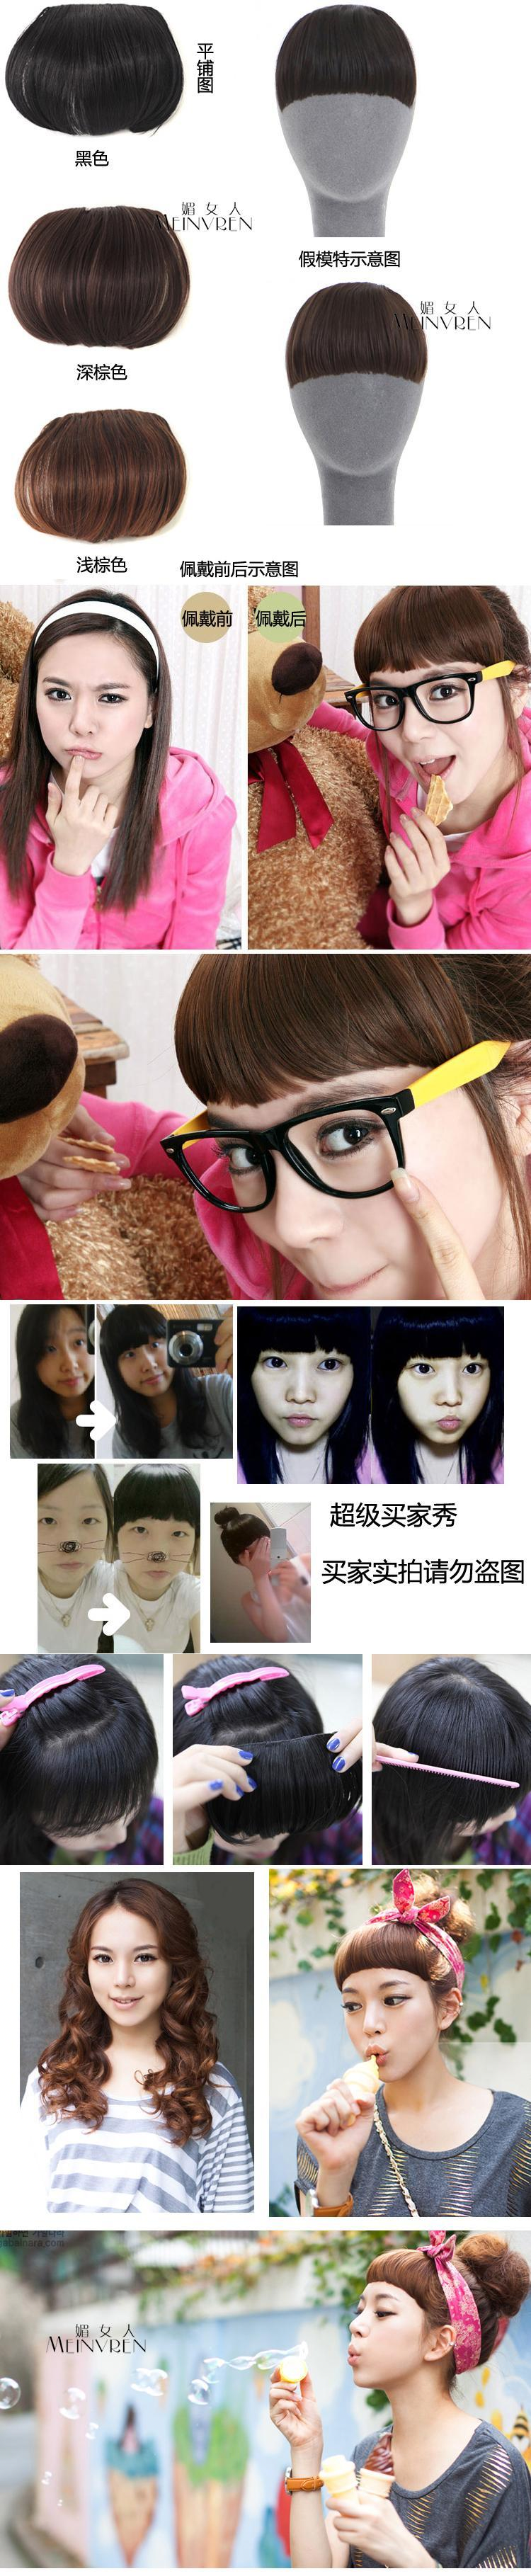 Lemon-tree 2013 New Sweet Girls Essential Matte Women's Natural Seamless Neat Full  Bangs Hairpiece Wig